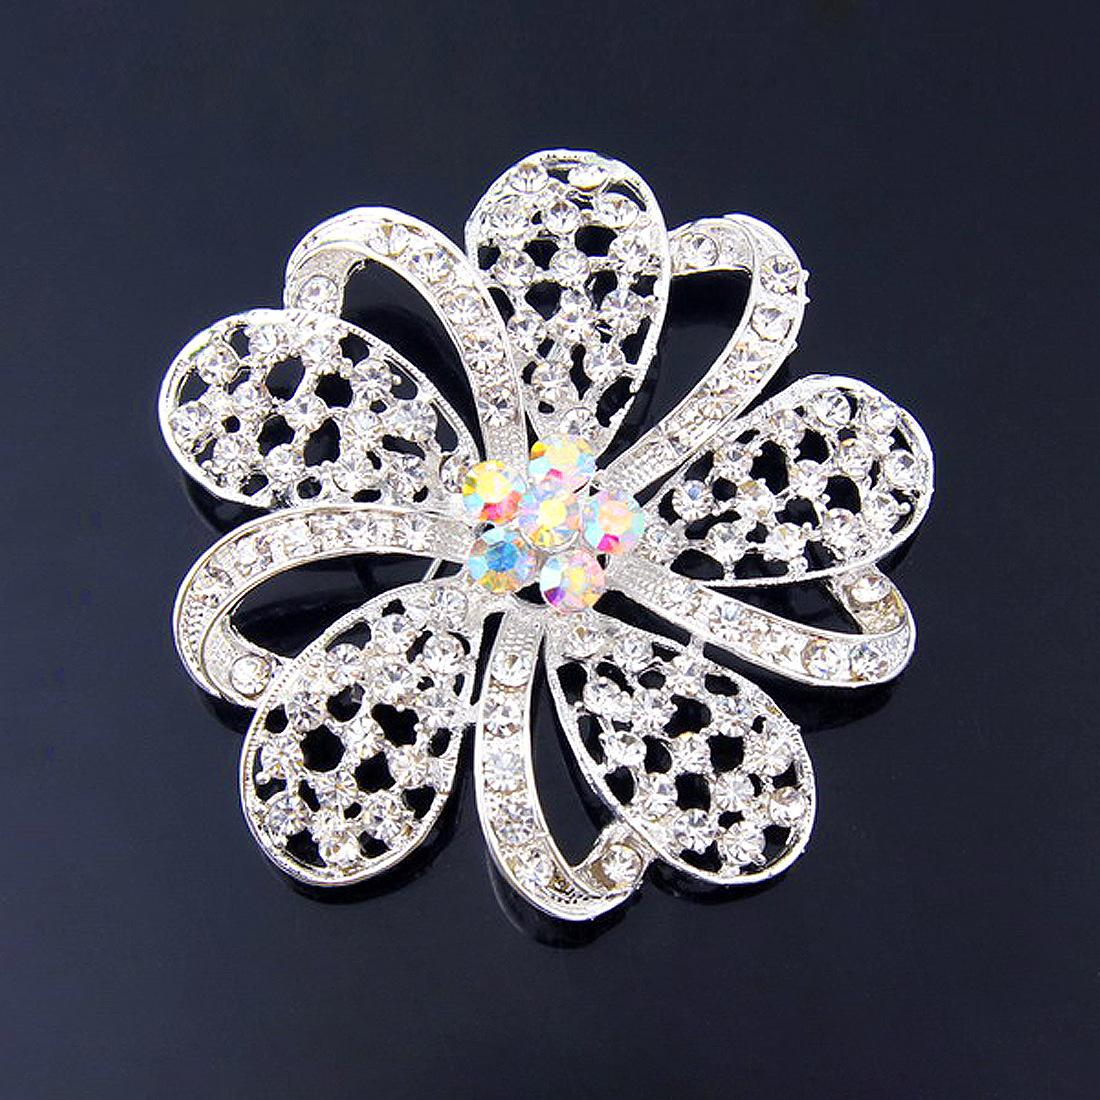 Sparkly Silver Plated Clear Rhinestone Crystal Diamante Nice Design Small Heart Flower Brooch Party Prom Gift Pins